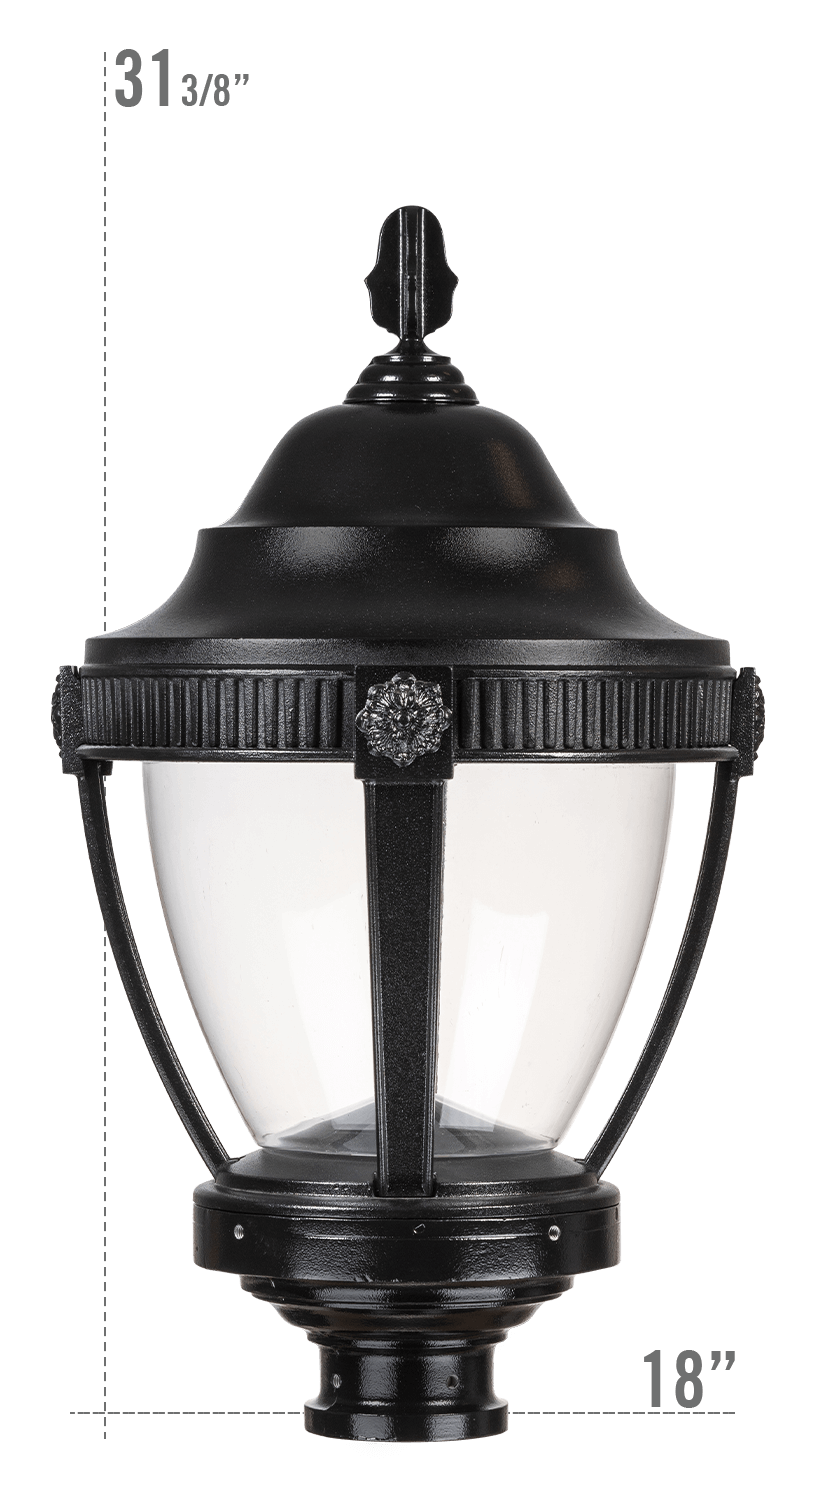 AUGUSTA LED LUMINAIRE WITH DUNMORE FITTER CLEAR GLOBE